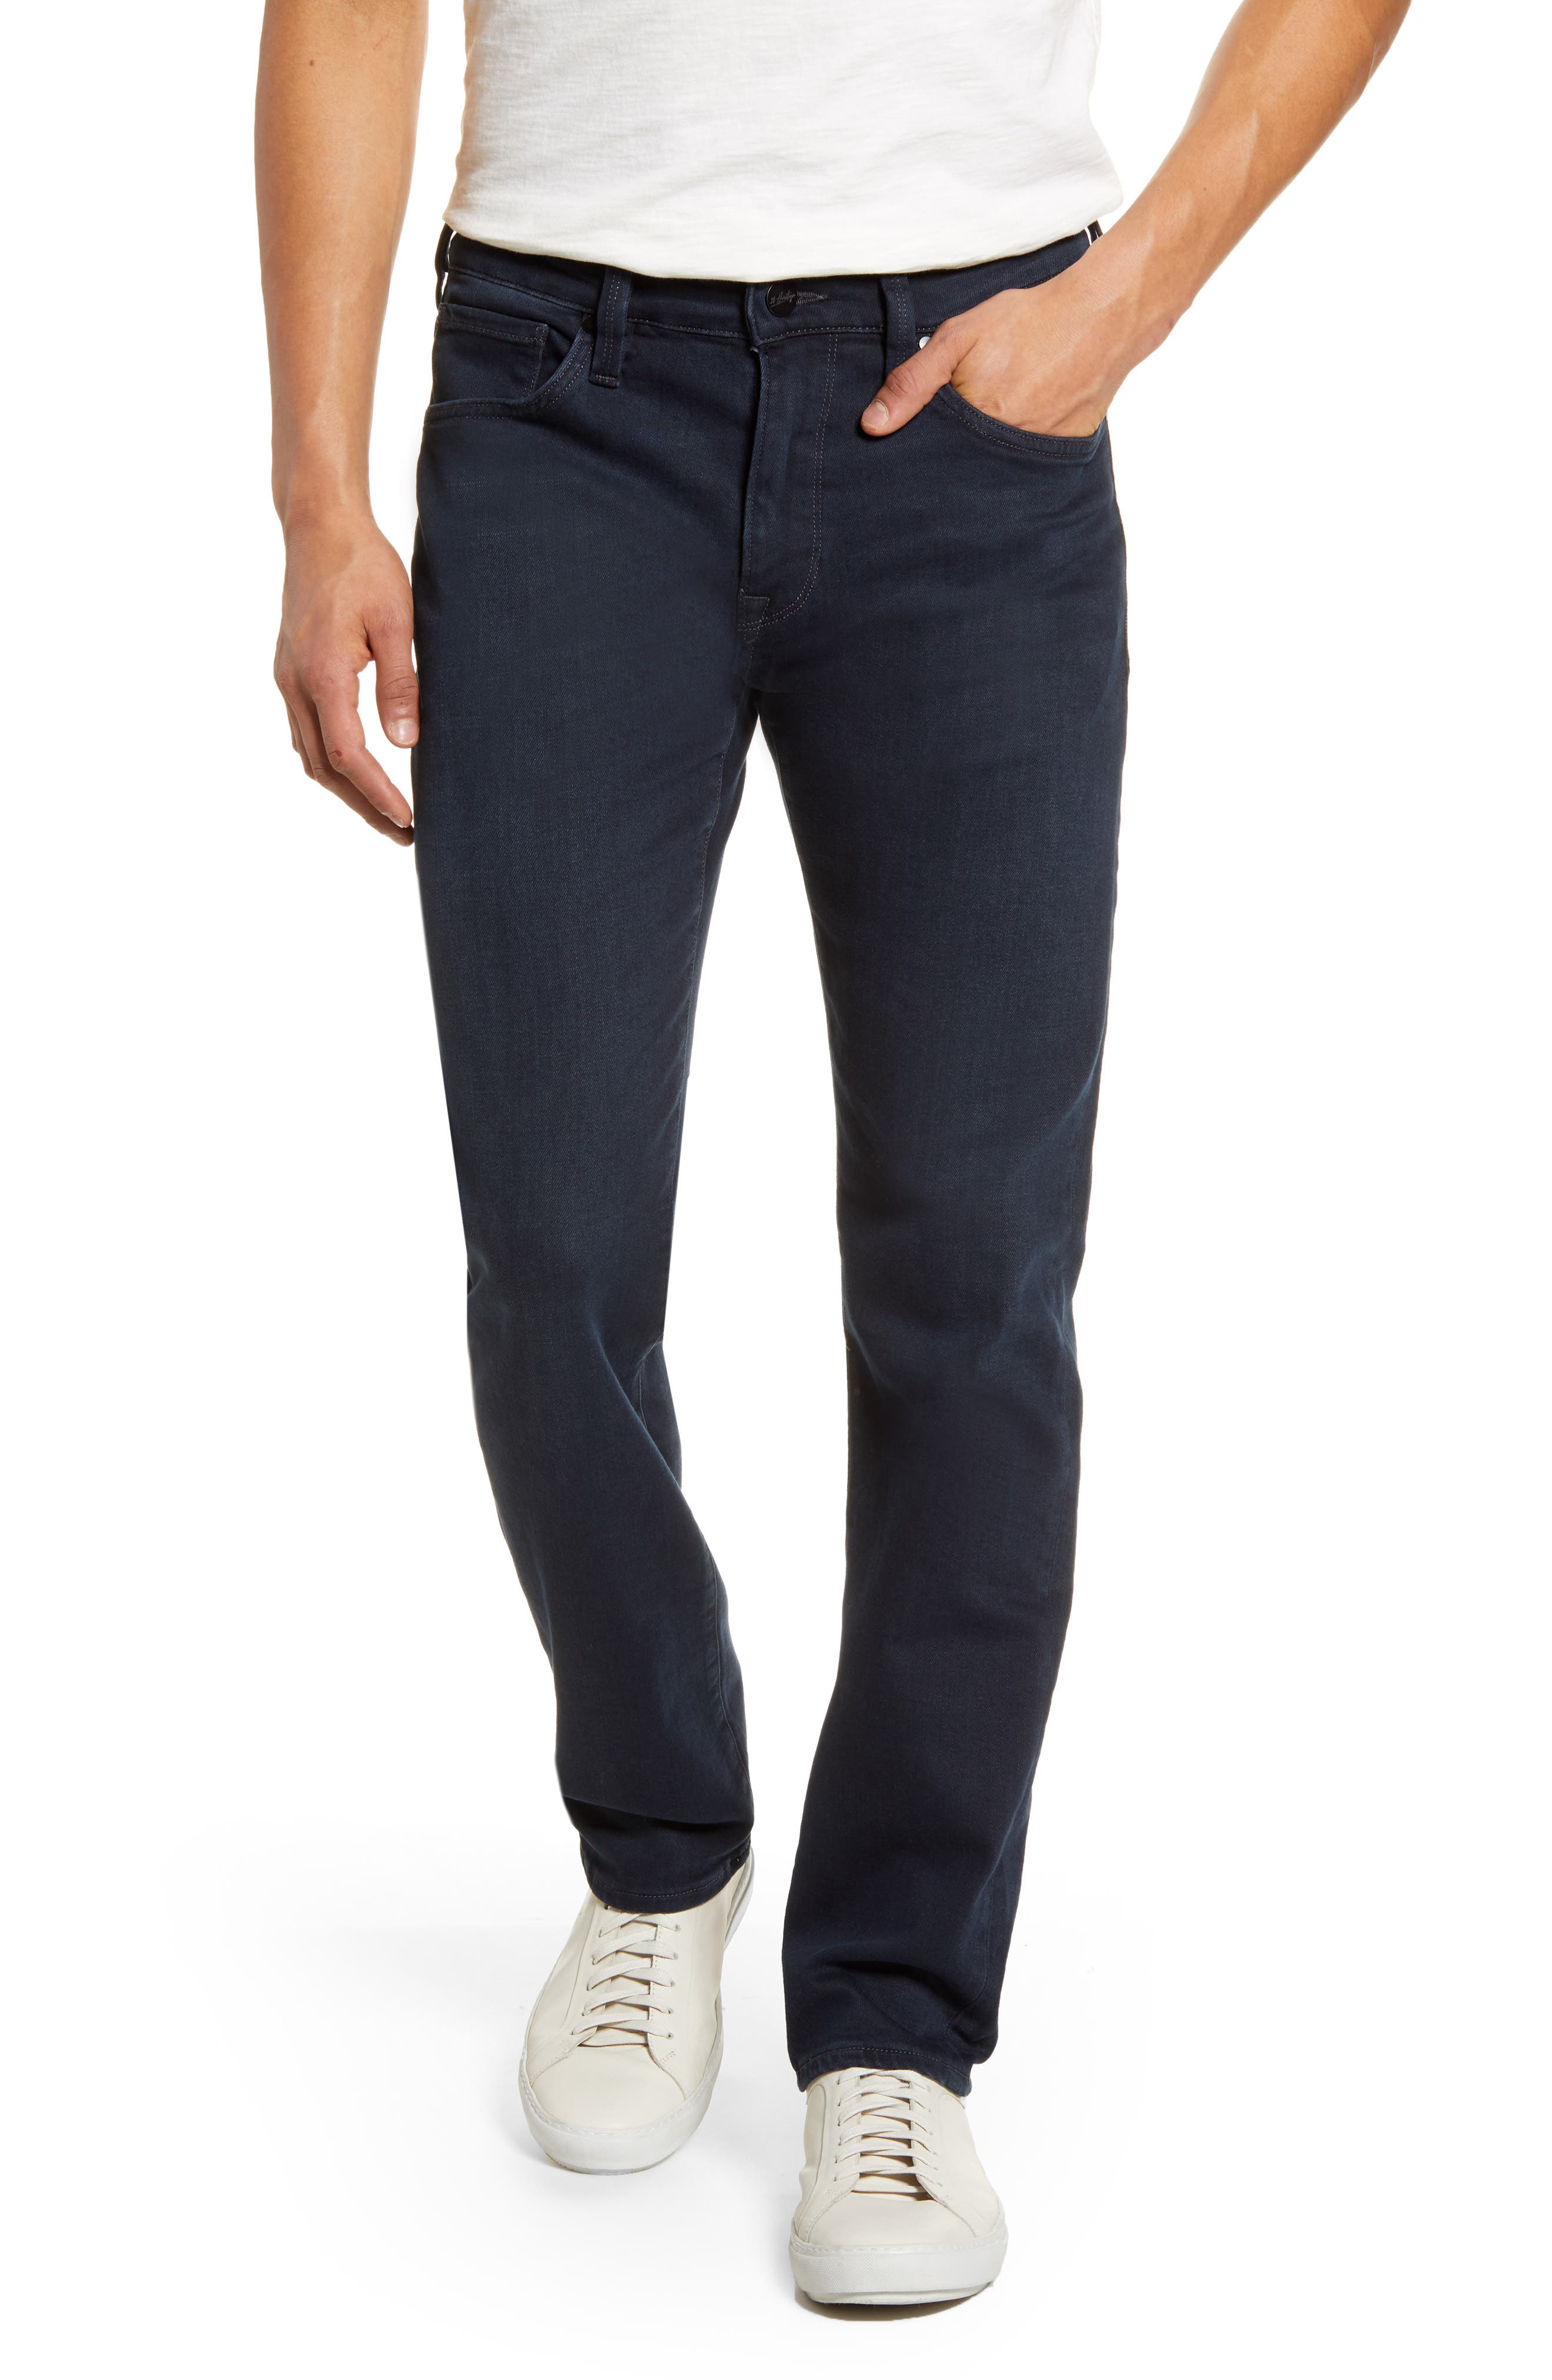 Image of 34 Heritage 34 Courage Dark Shaded Jeans